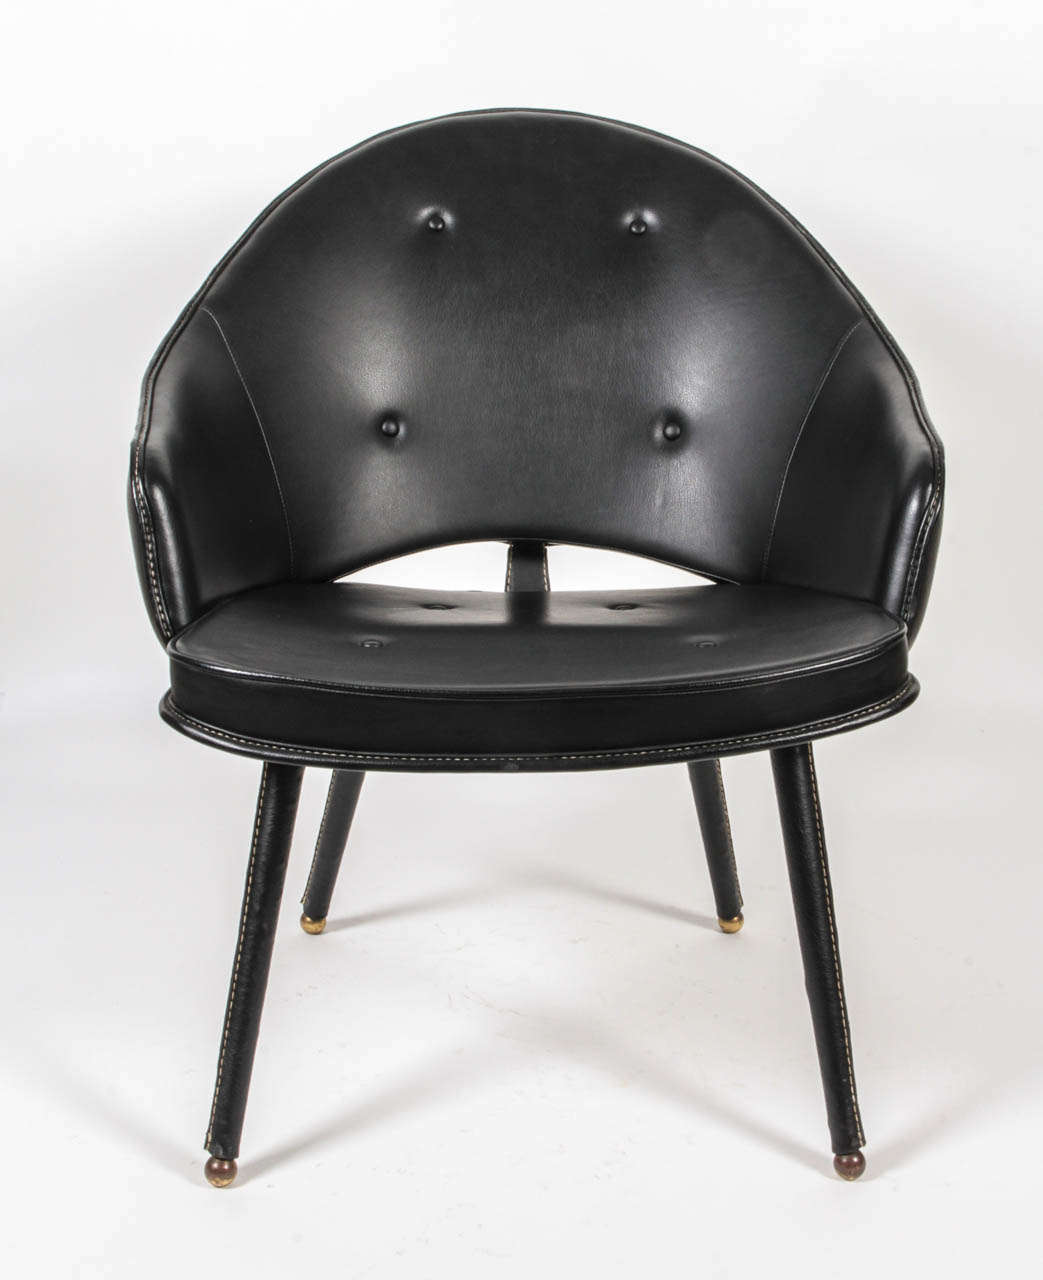 1950s stitched black leather armchair by Jacques Adnet. Leather have been changed by a worker of Hermes firm.